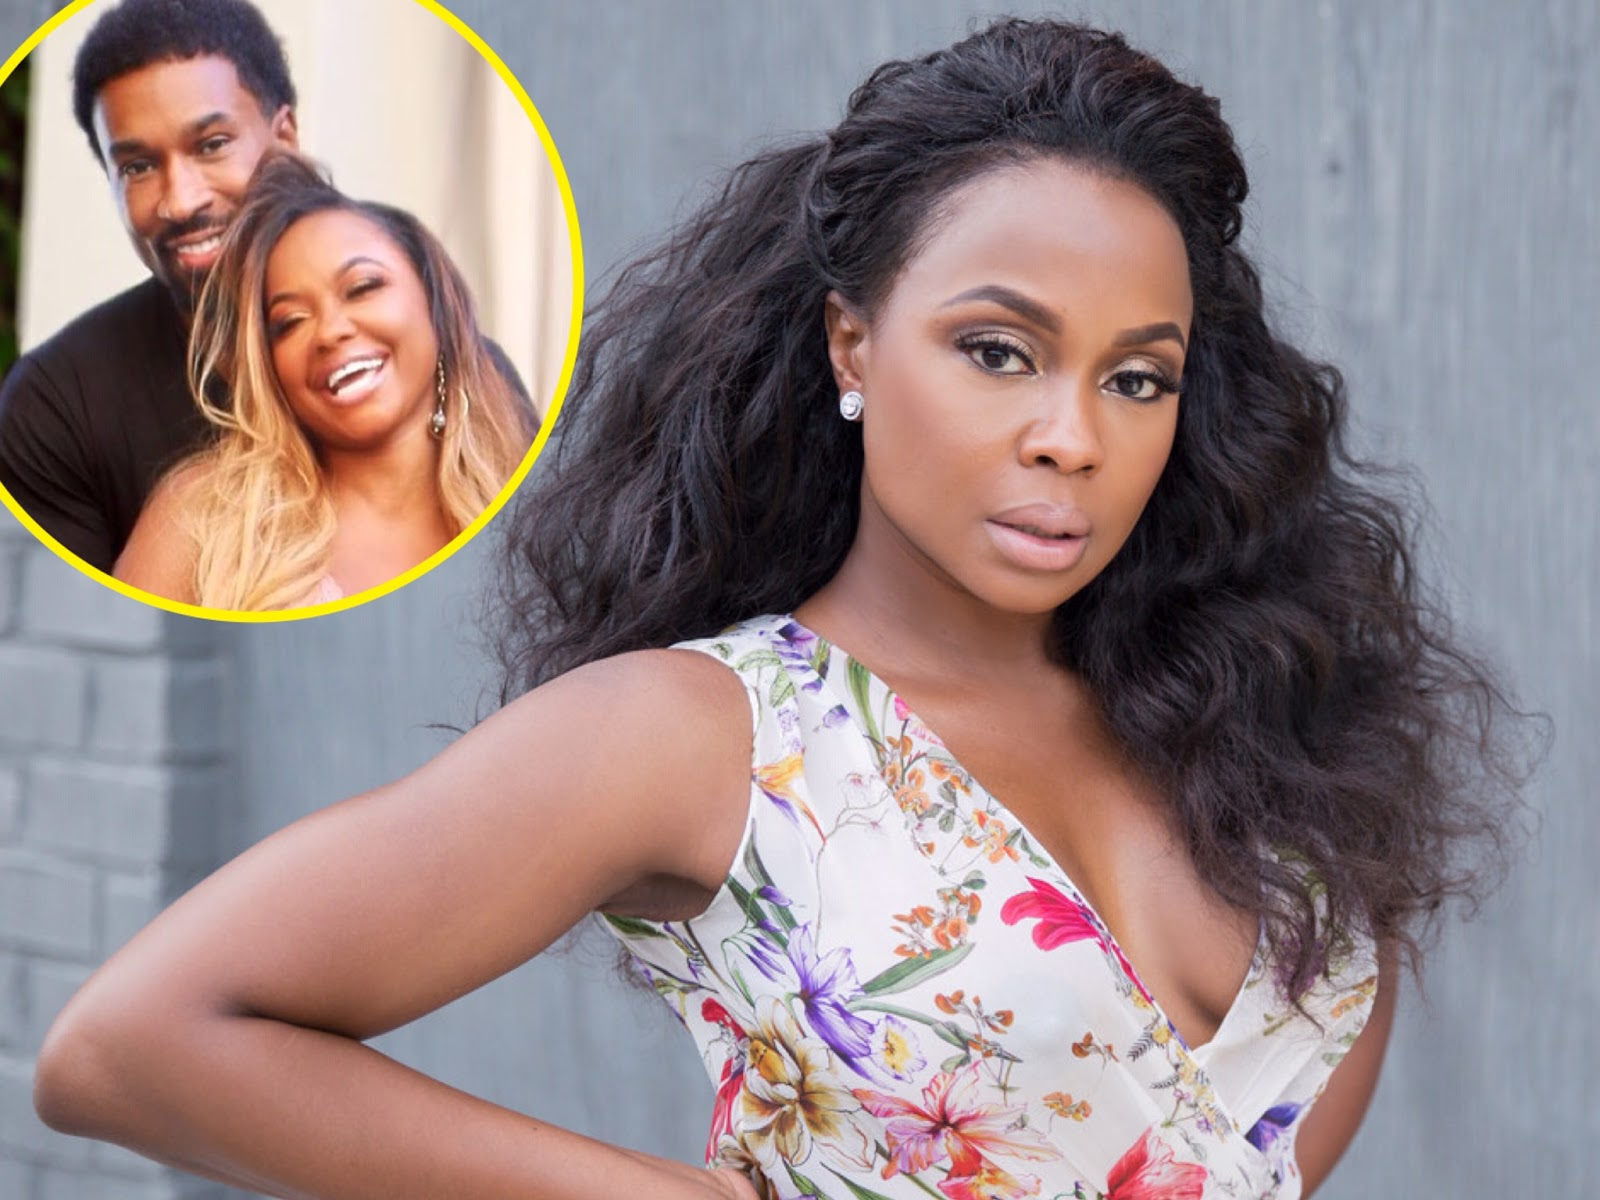 Phaedra Parks Reveals The Reason Why She And Boyfriend Medina Islam Joined Marriage Boot Camp And Addresses Potential Rhoa Return